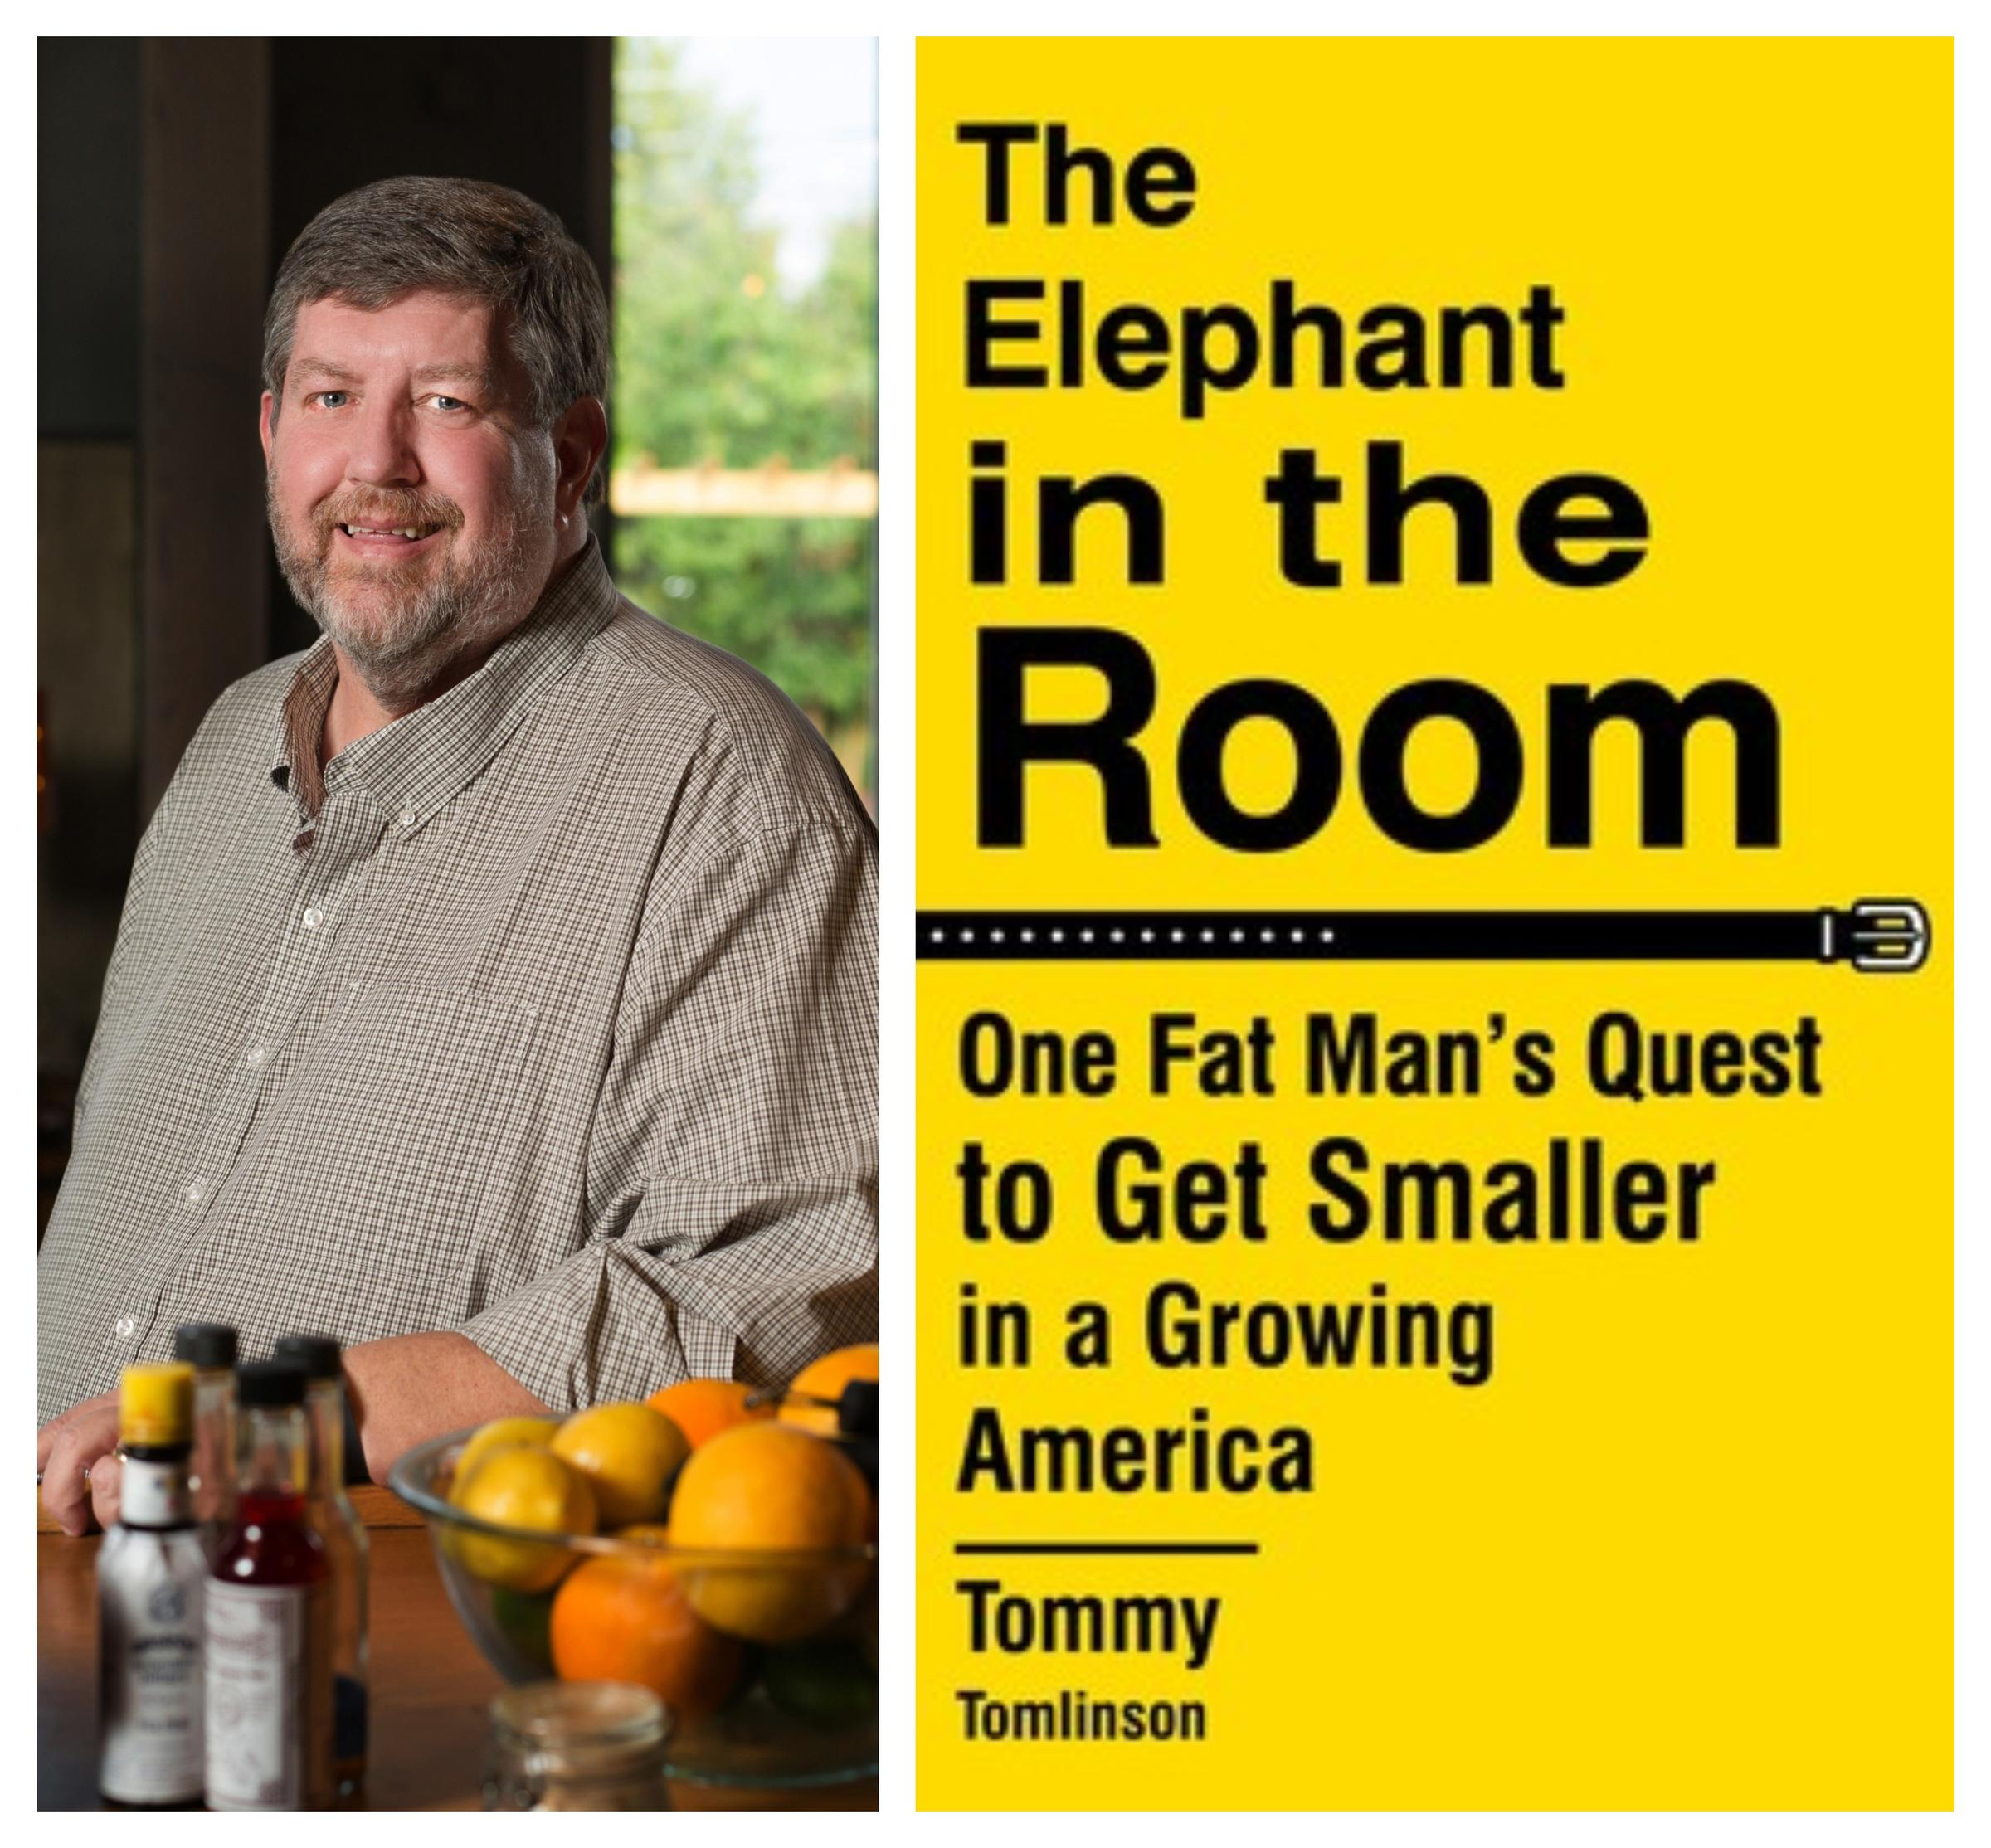 Tommy Tomlinson: Author's Visit